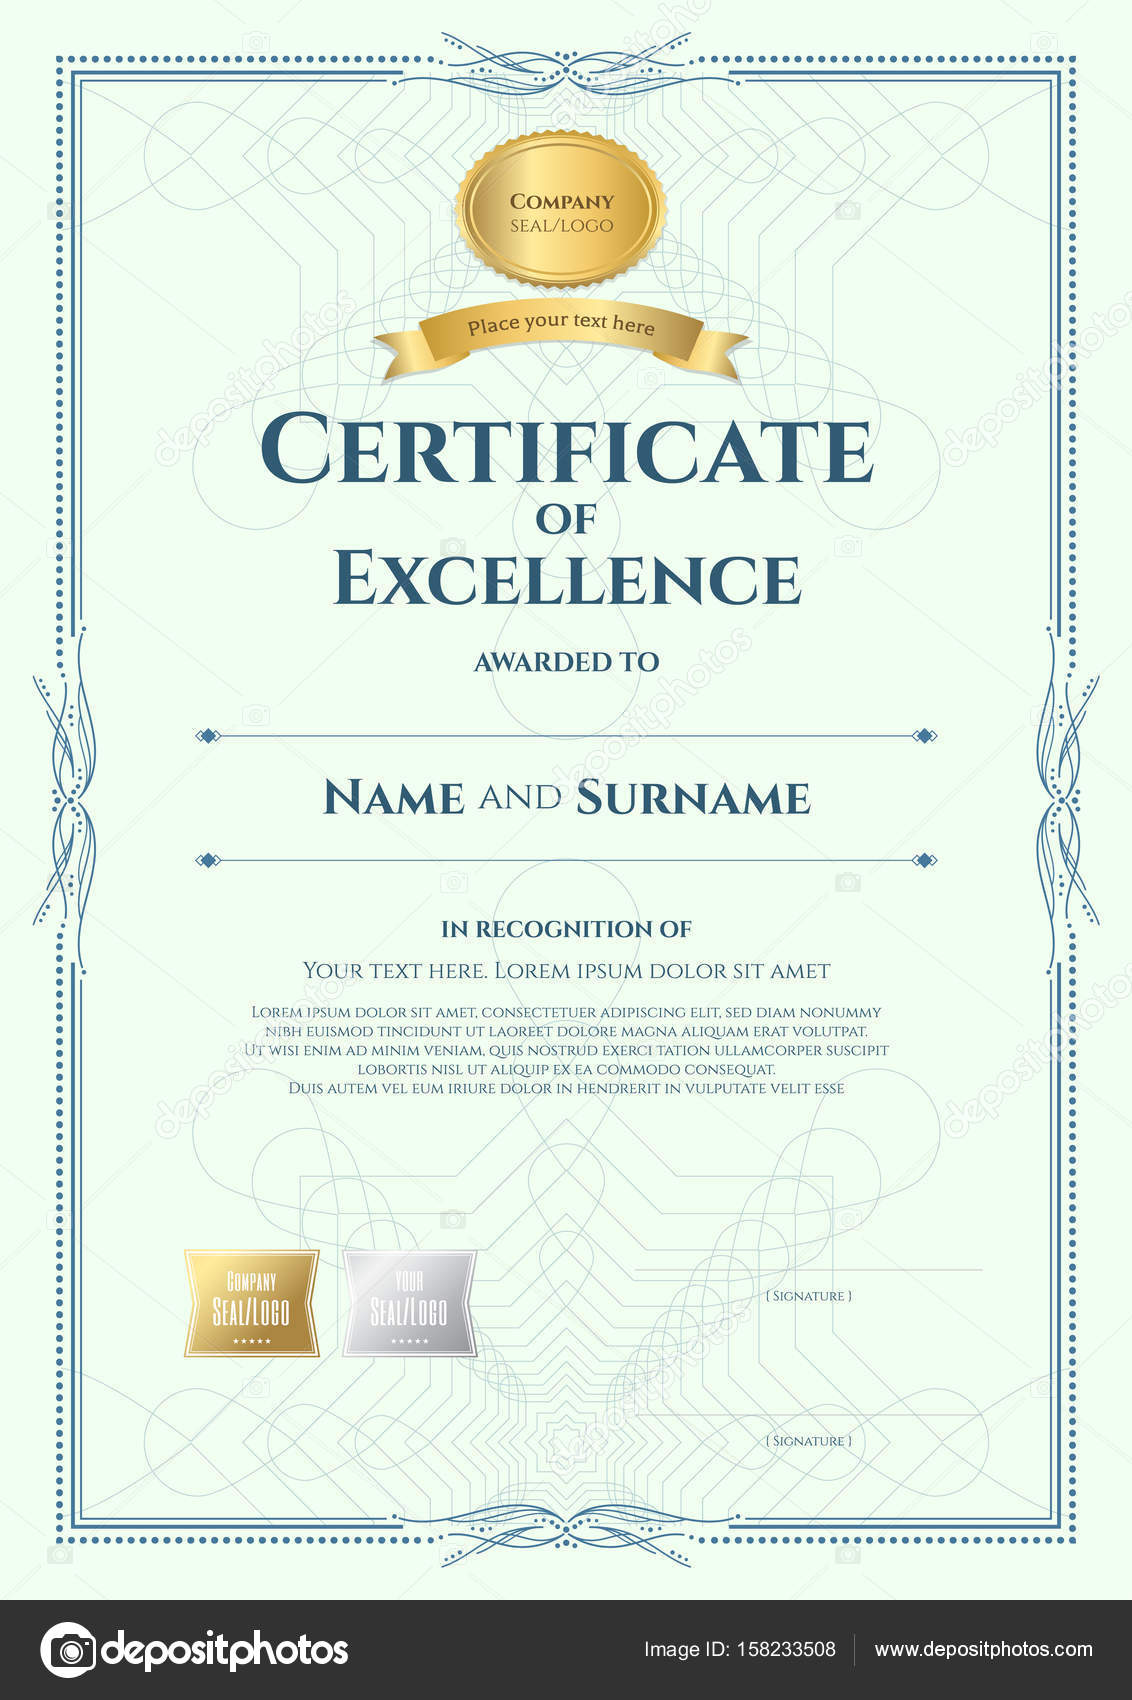 Portrait Certificate Of Excellence Template With Award Ribbon On U2014 Stock  Vector #158233508